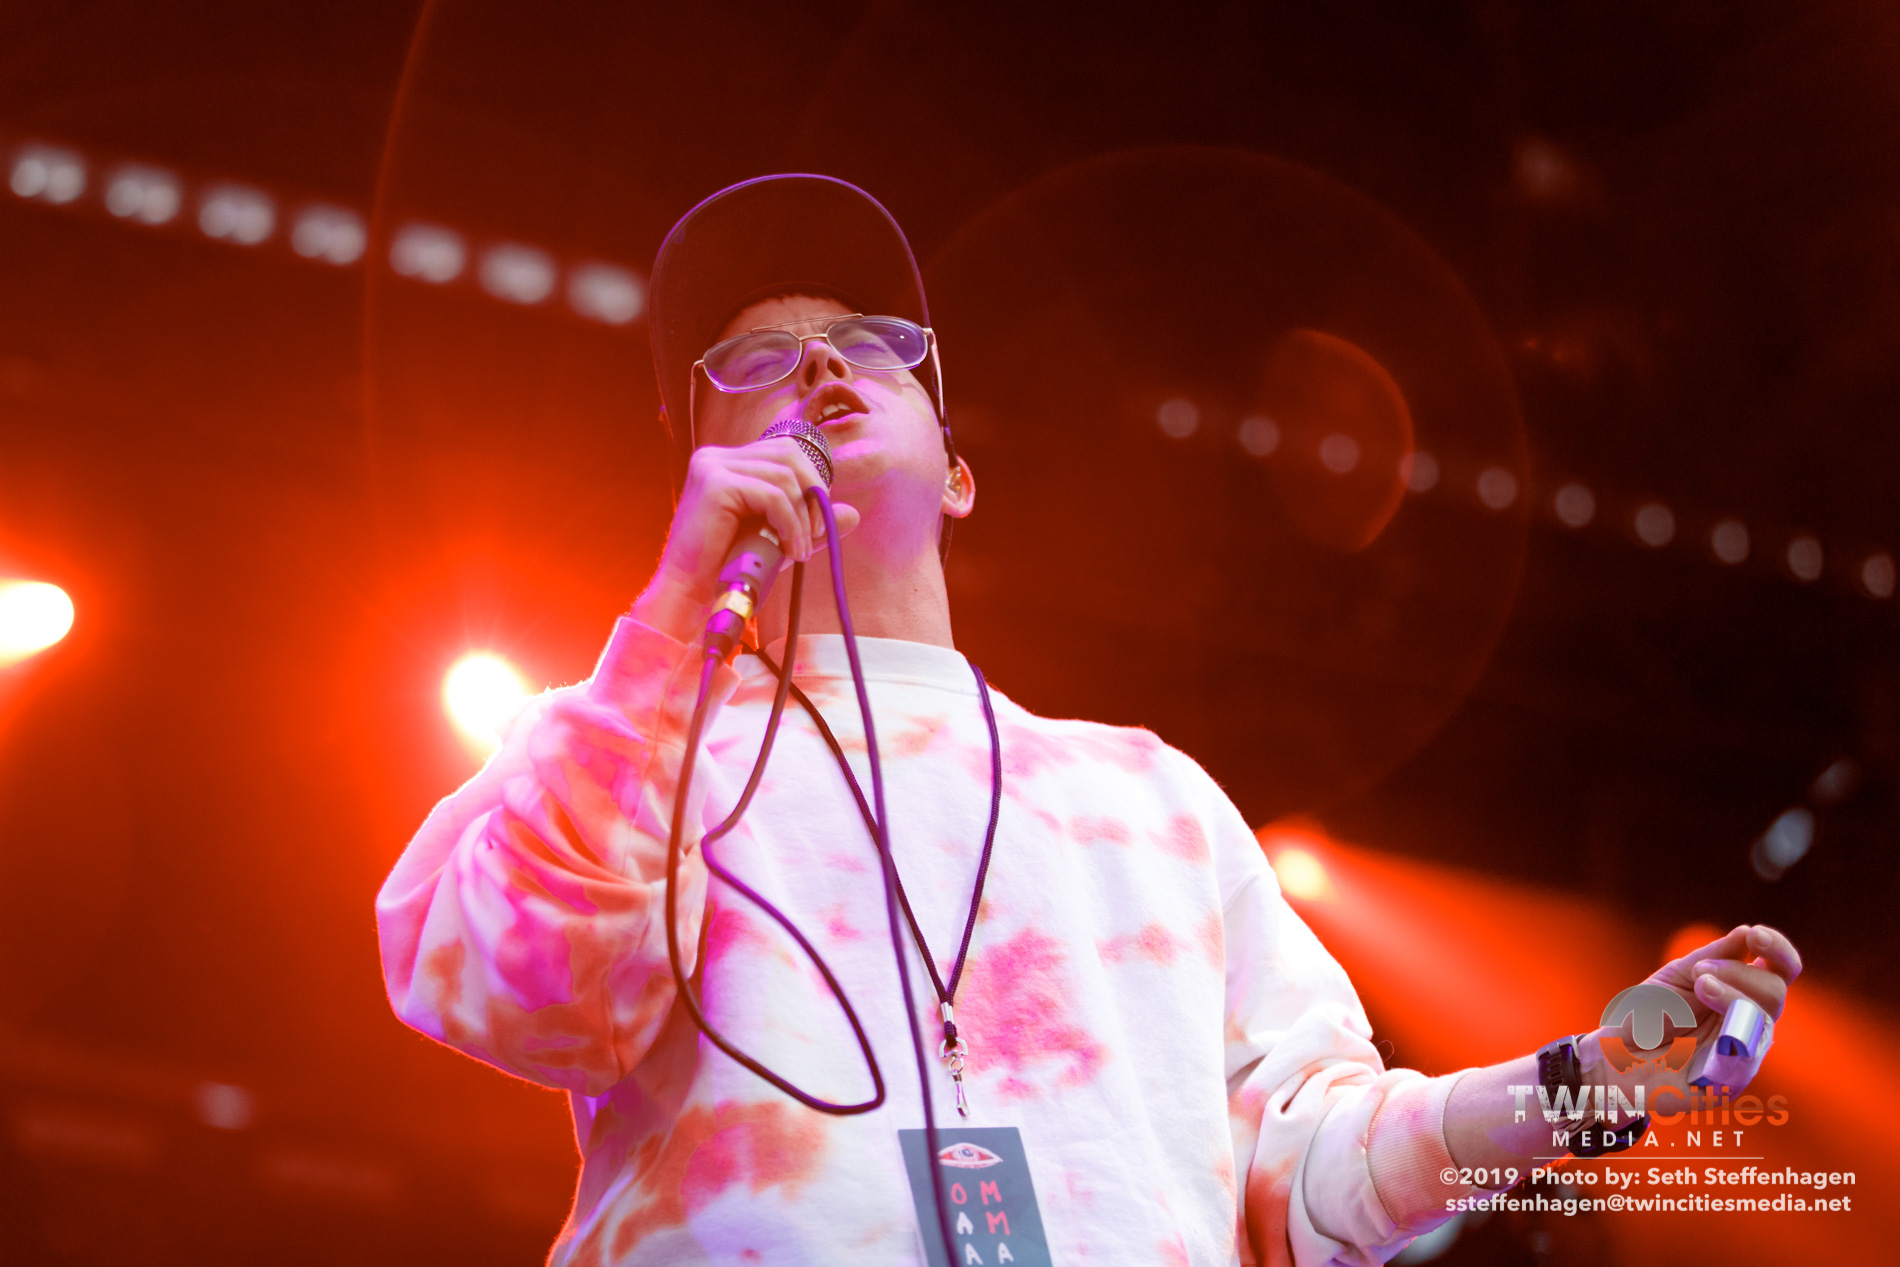 September 14, 2019 - Minneapolis, Minnesota, United States -  Lower Dens live in concert at Surly Brewing Festival Field opening for Of Monsters And Men.  (Photo by Seth Steffenhagen/Steffenhagen Photography)